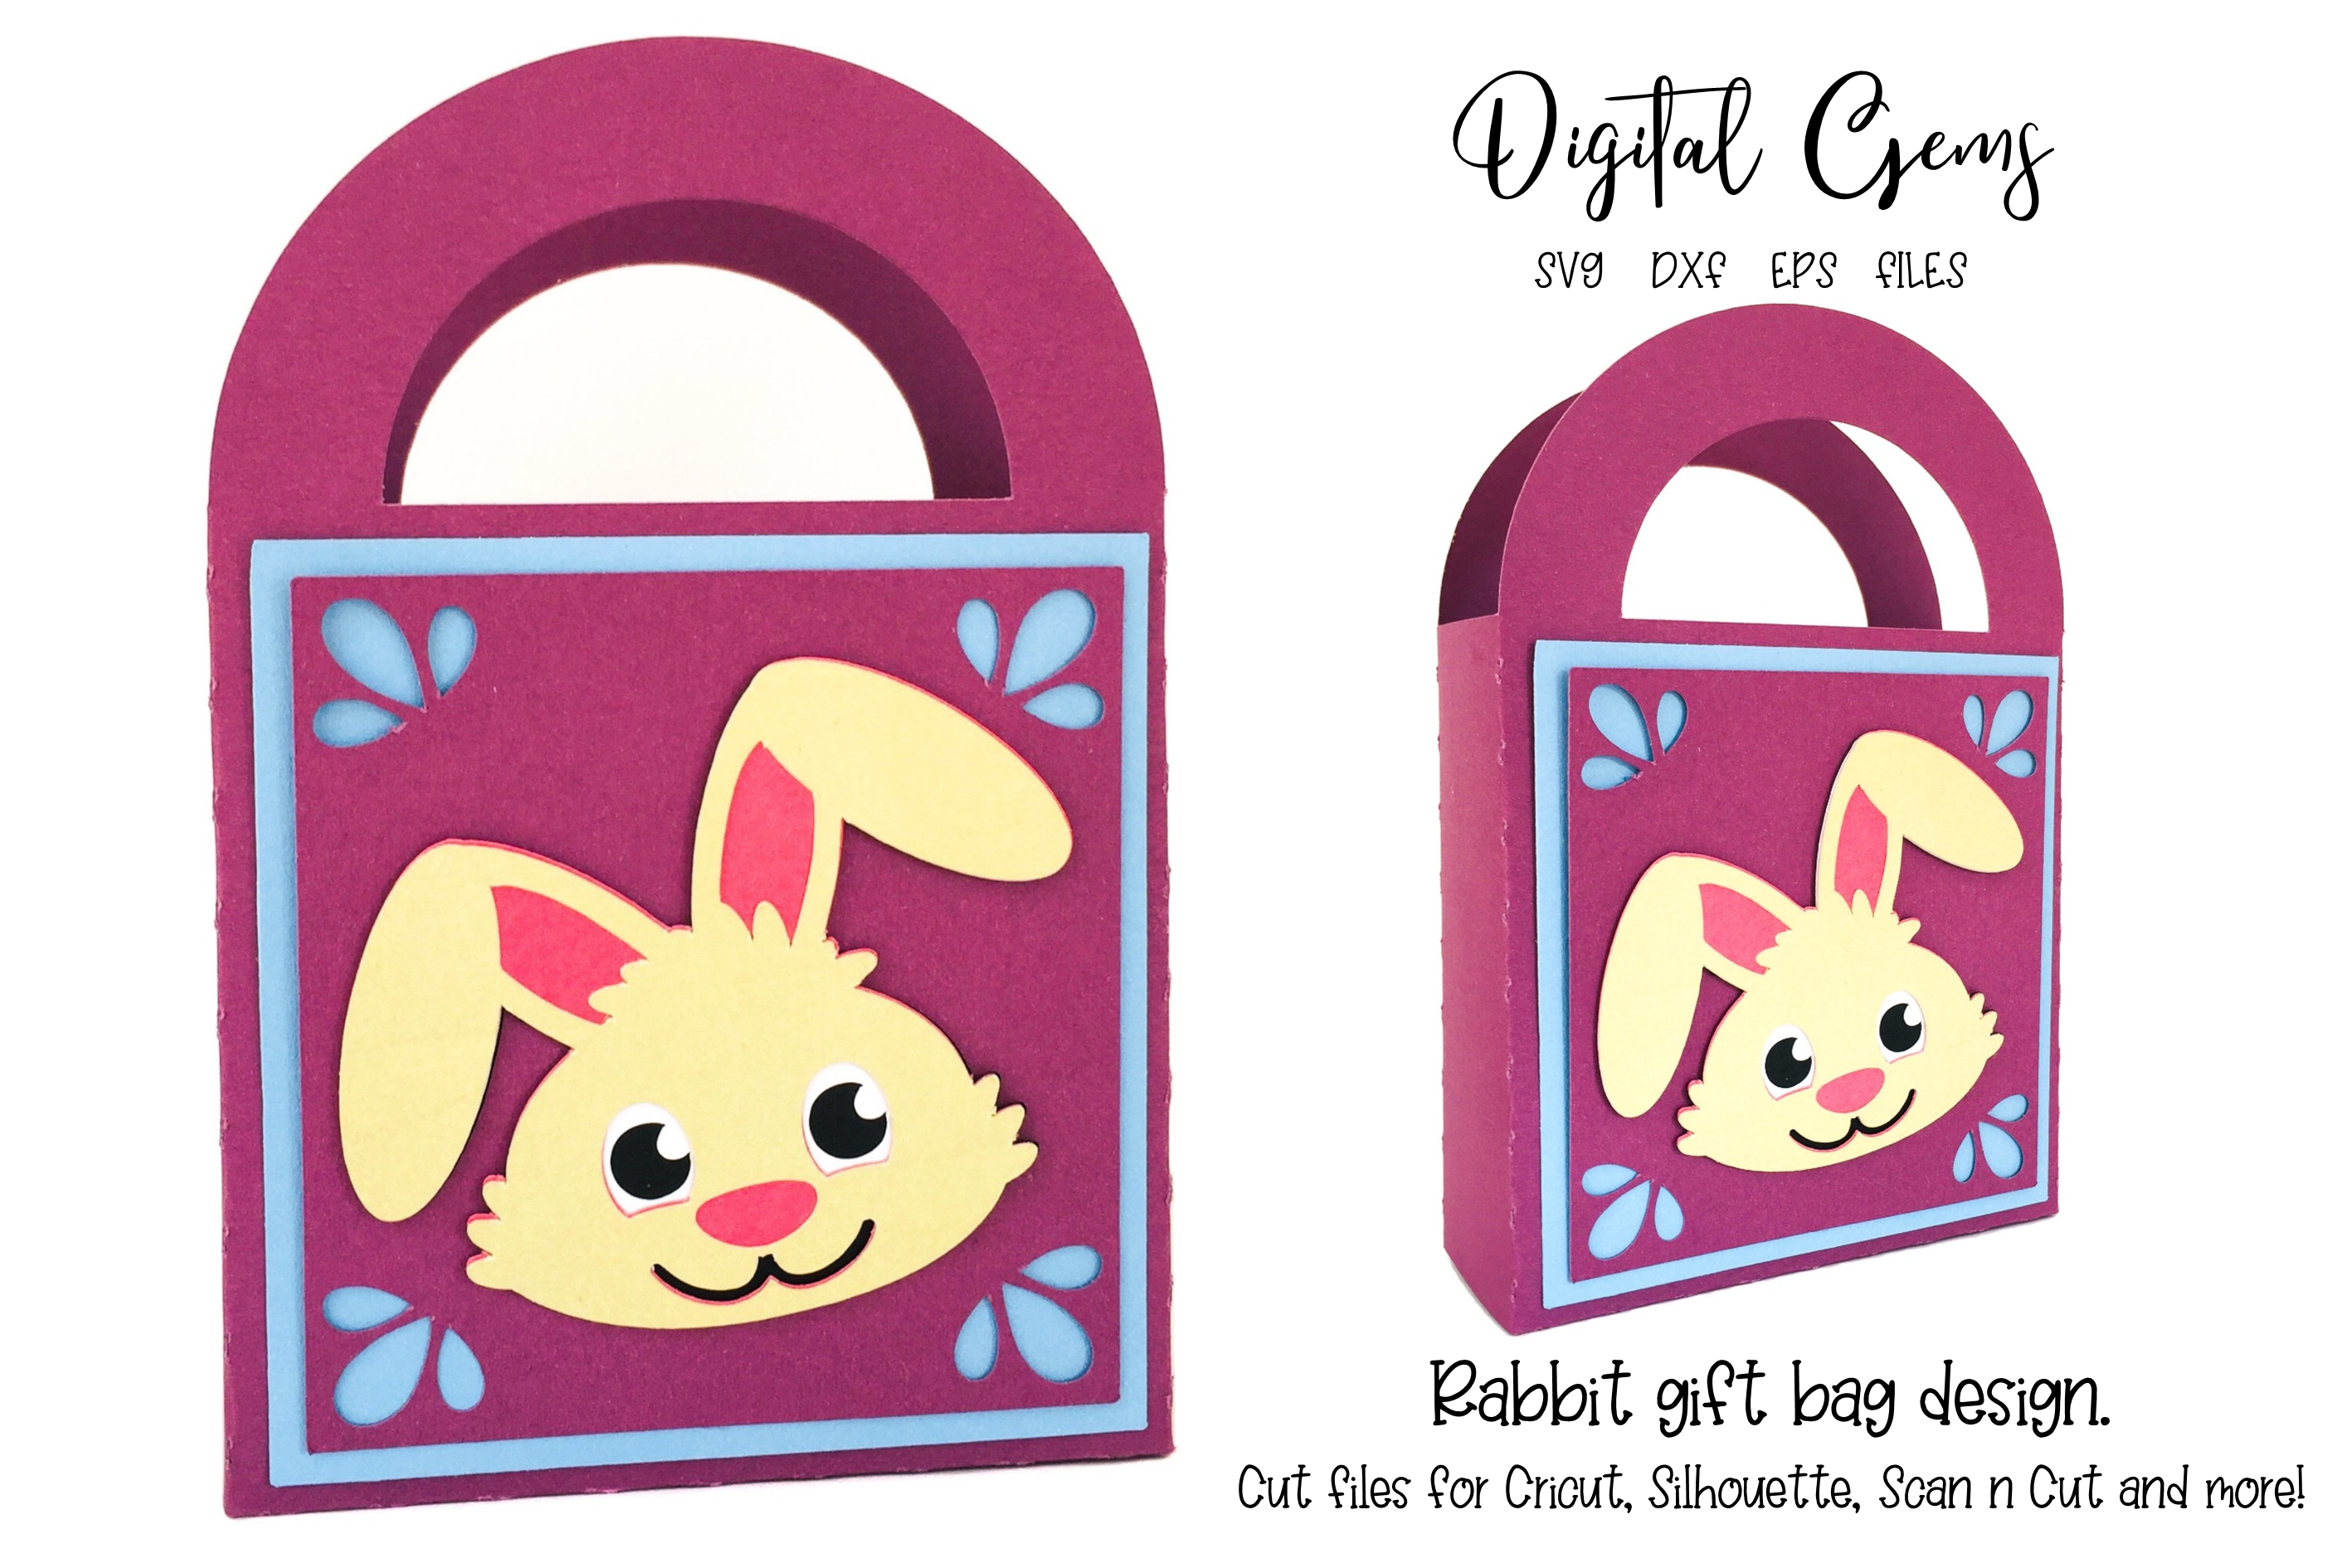 Download Free Easter Rabbit Gift Bag Design Graphic By Digital Gems Creative for Cricut Explore, Silhouette and other cutting machines.